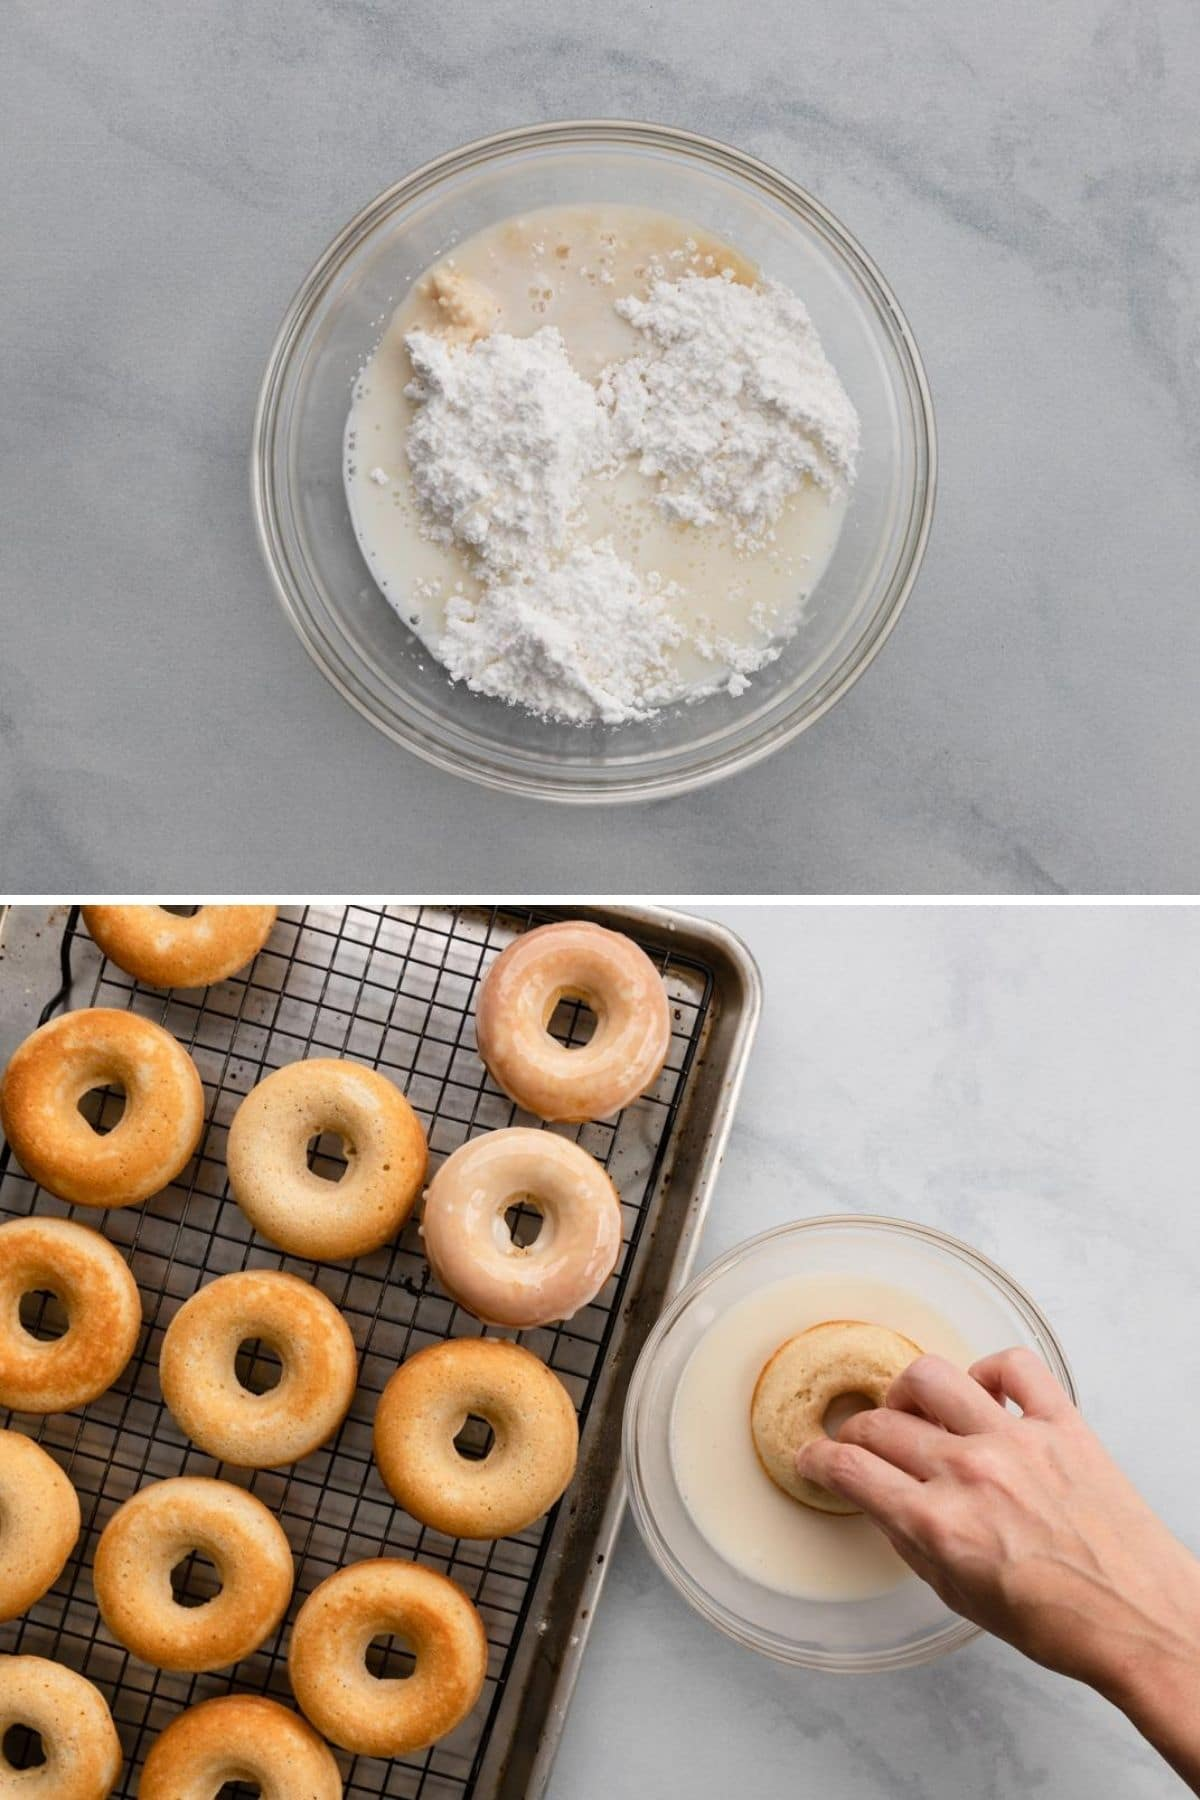 process shots showing ingredients for glaze in glass mixing bowl and hand dipping donuts into mixed glaze